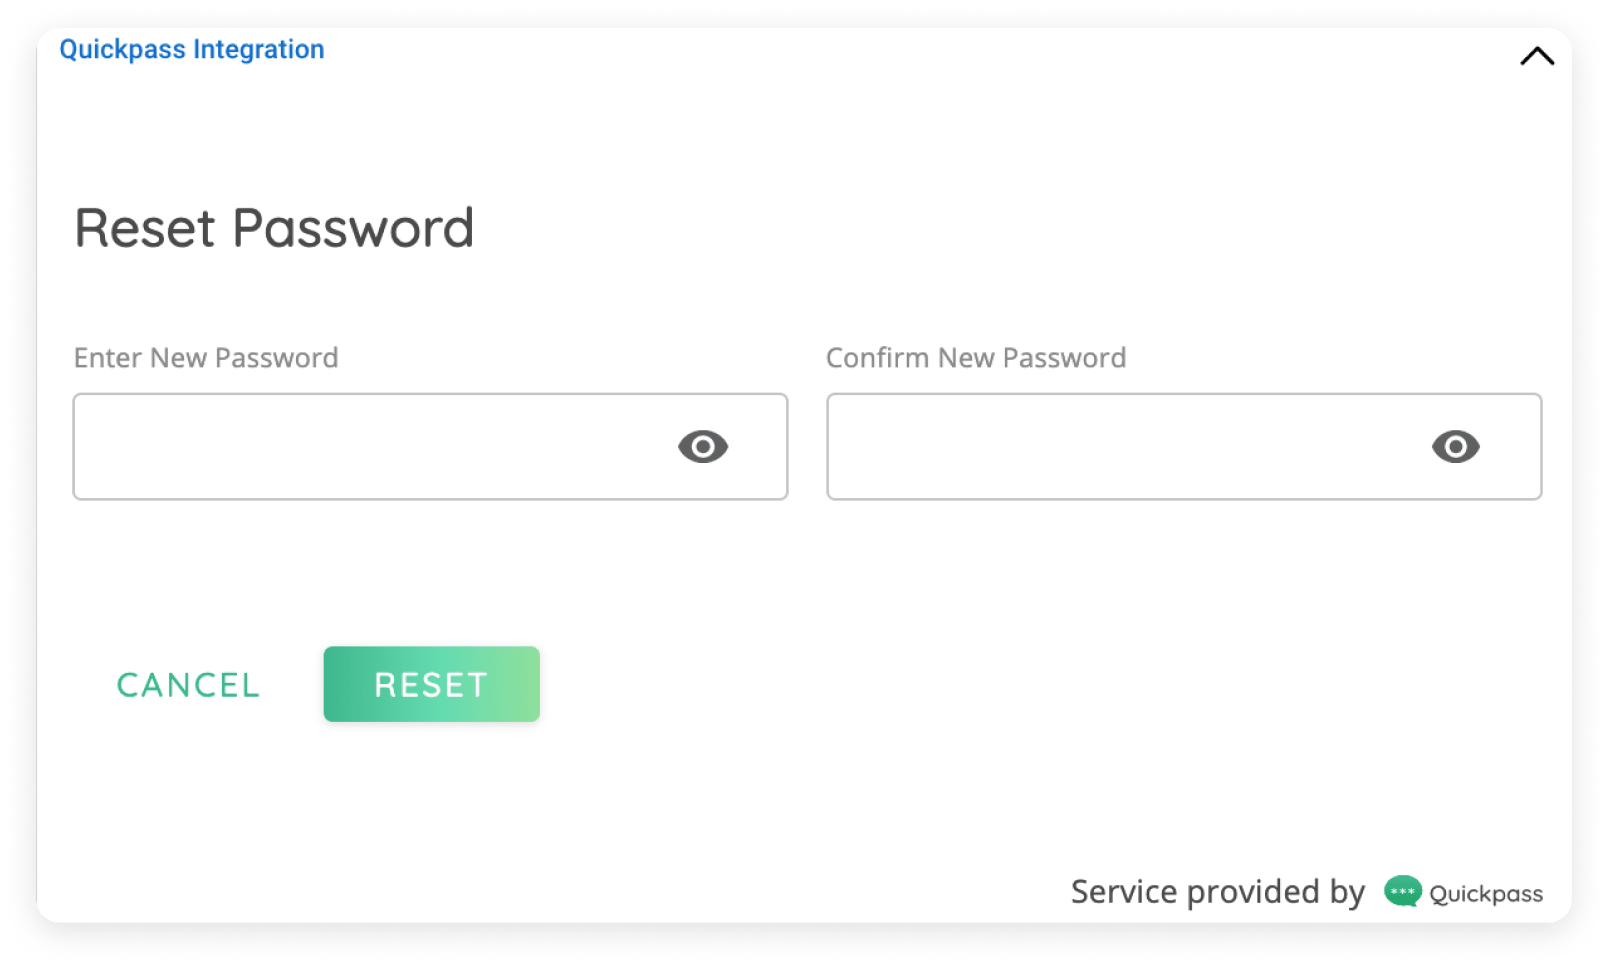 Reset Password page on Quickpass pod